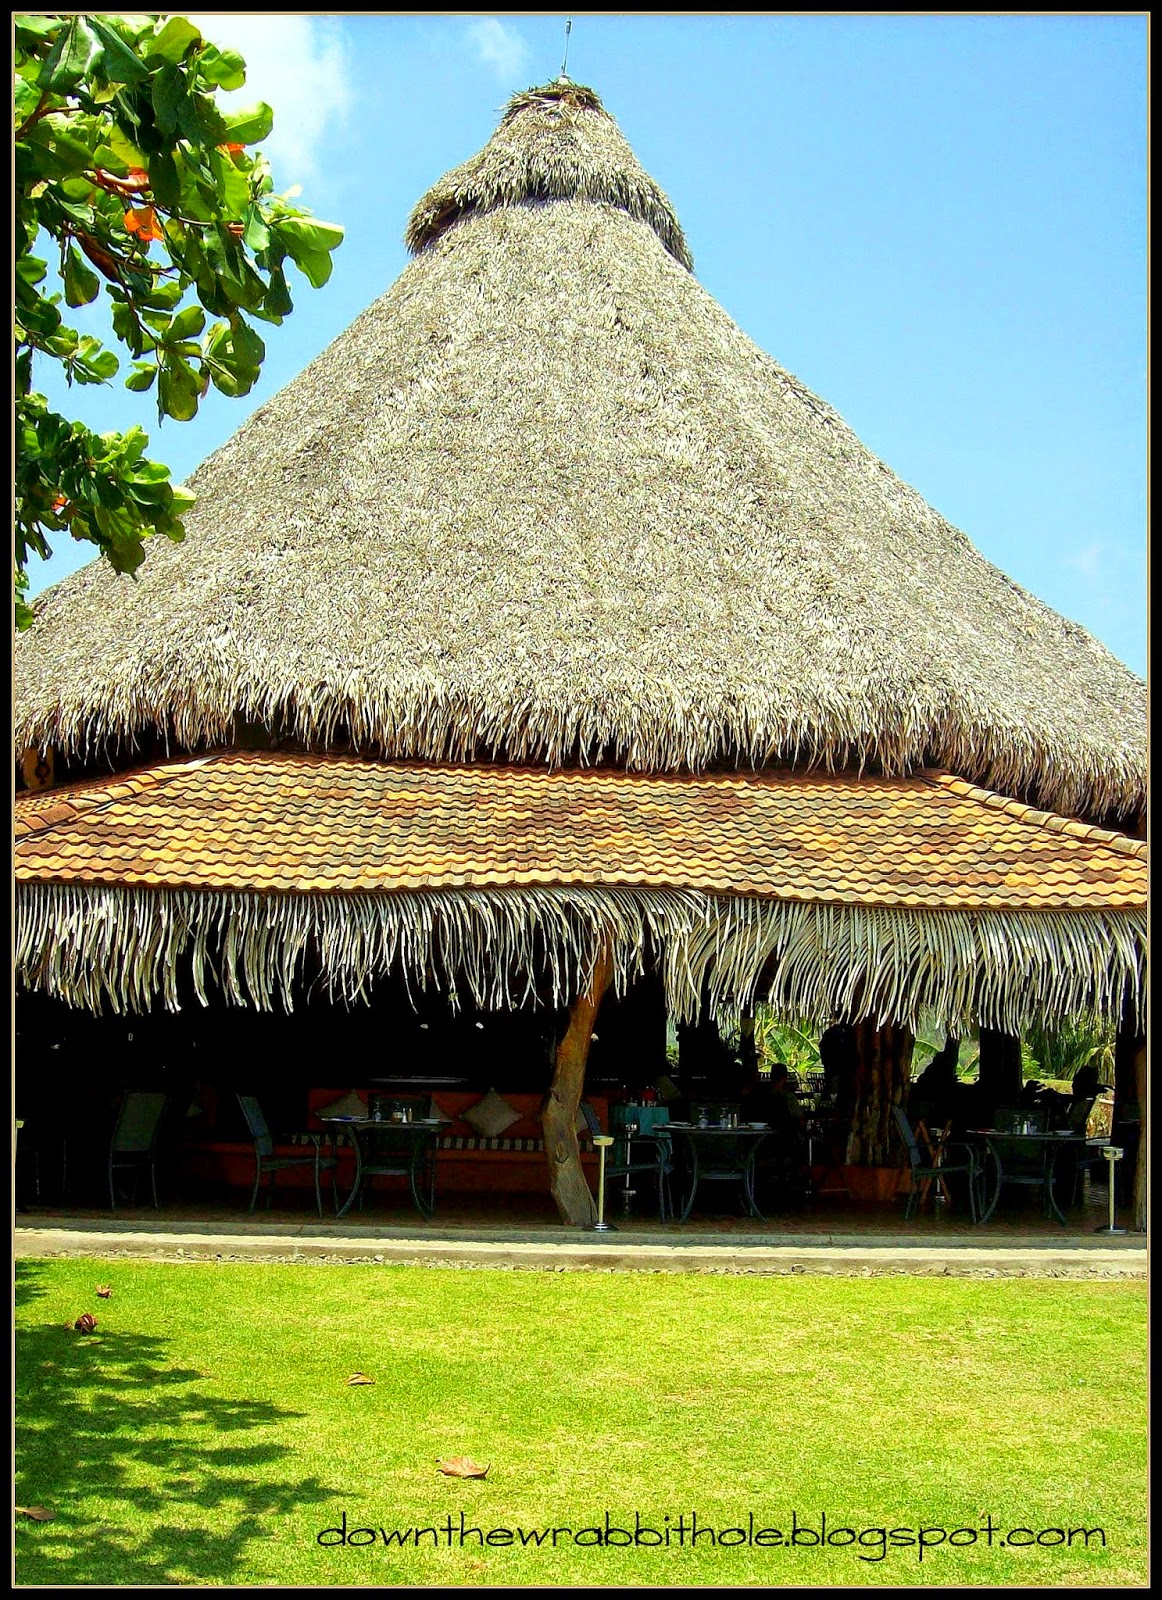 grass hut restaurant, Costa Rica buildings